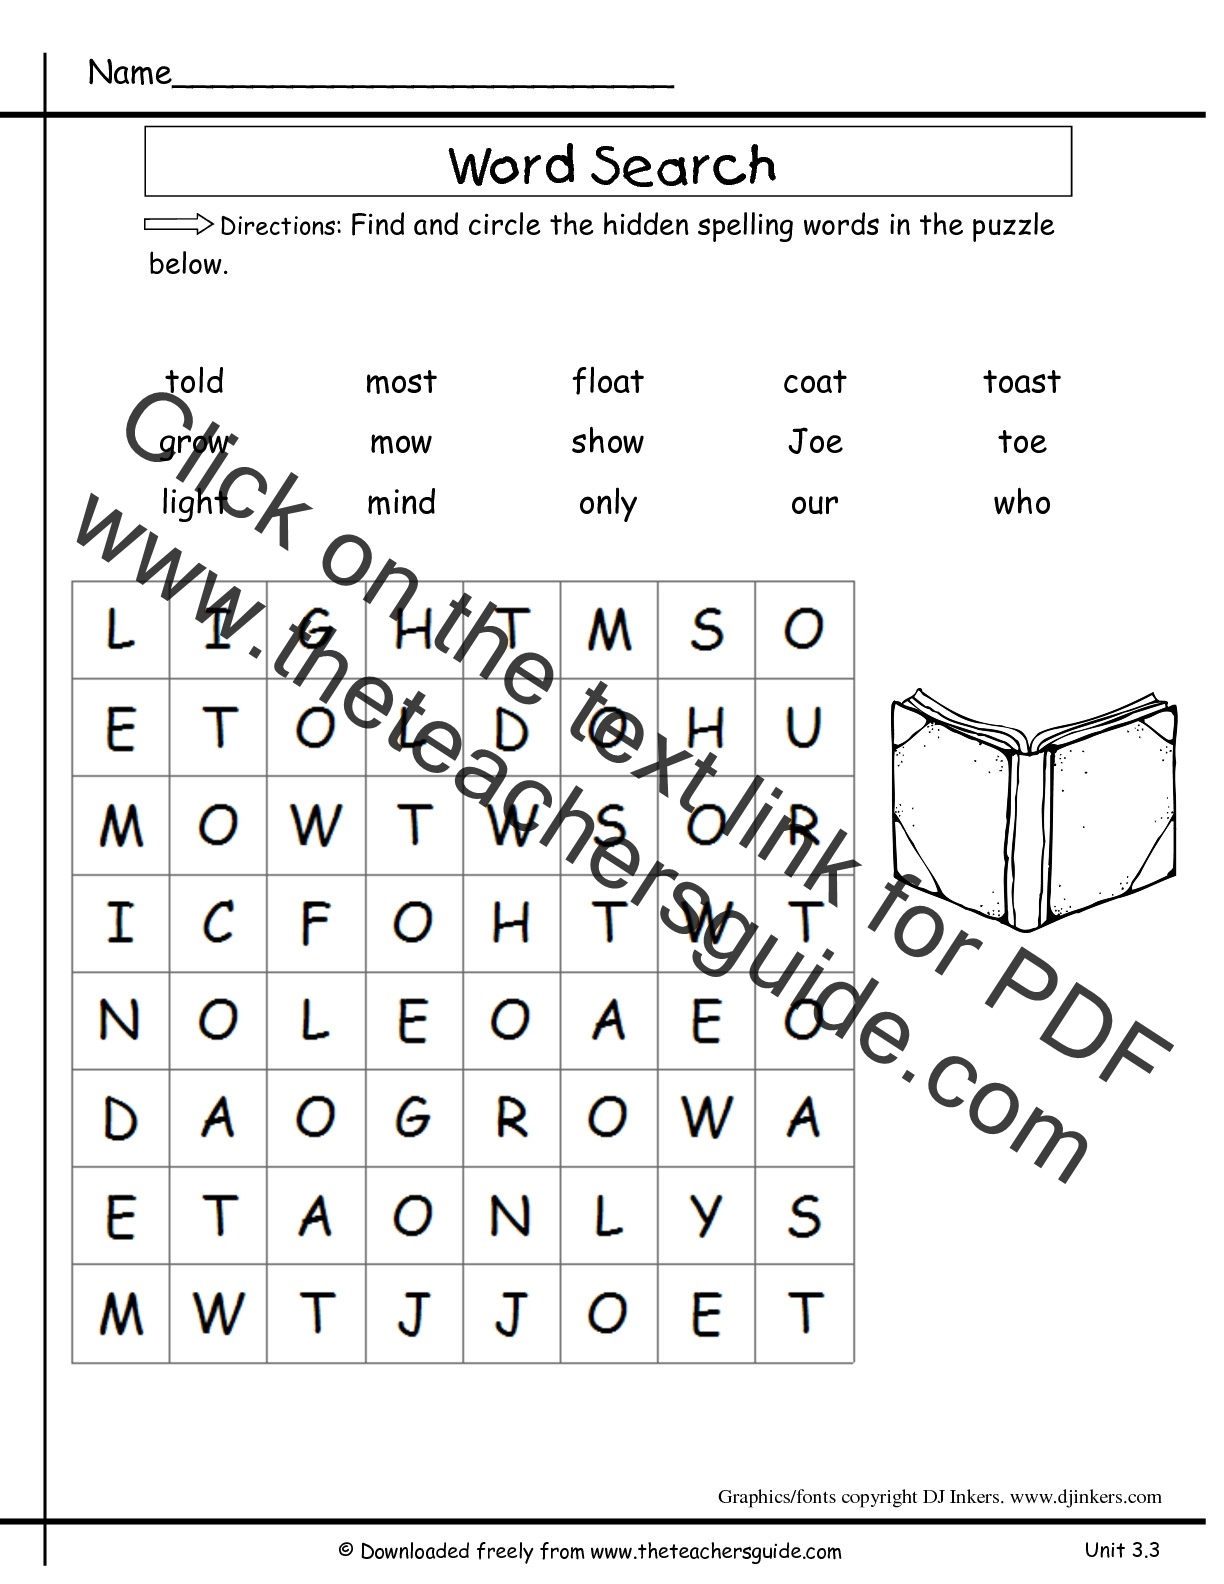 Homework For 2nd Graders 2nd Grade Activities Online 03 01